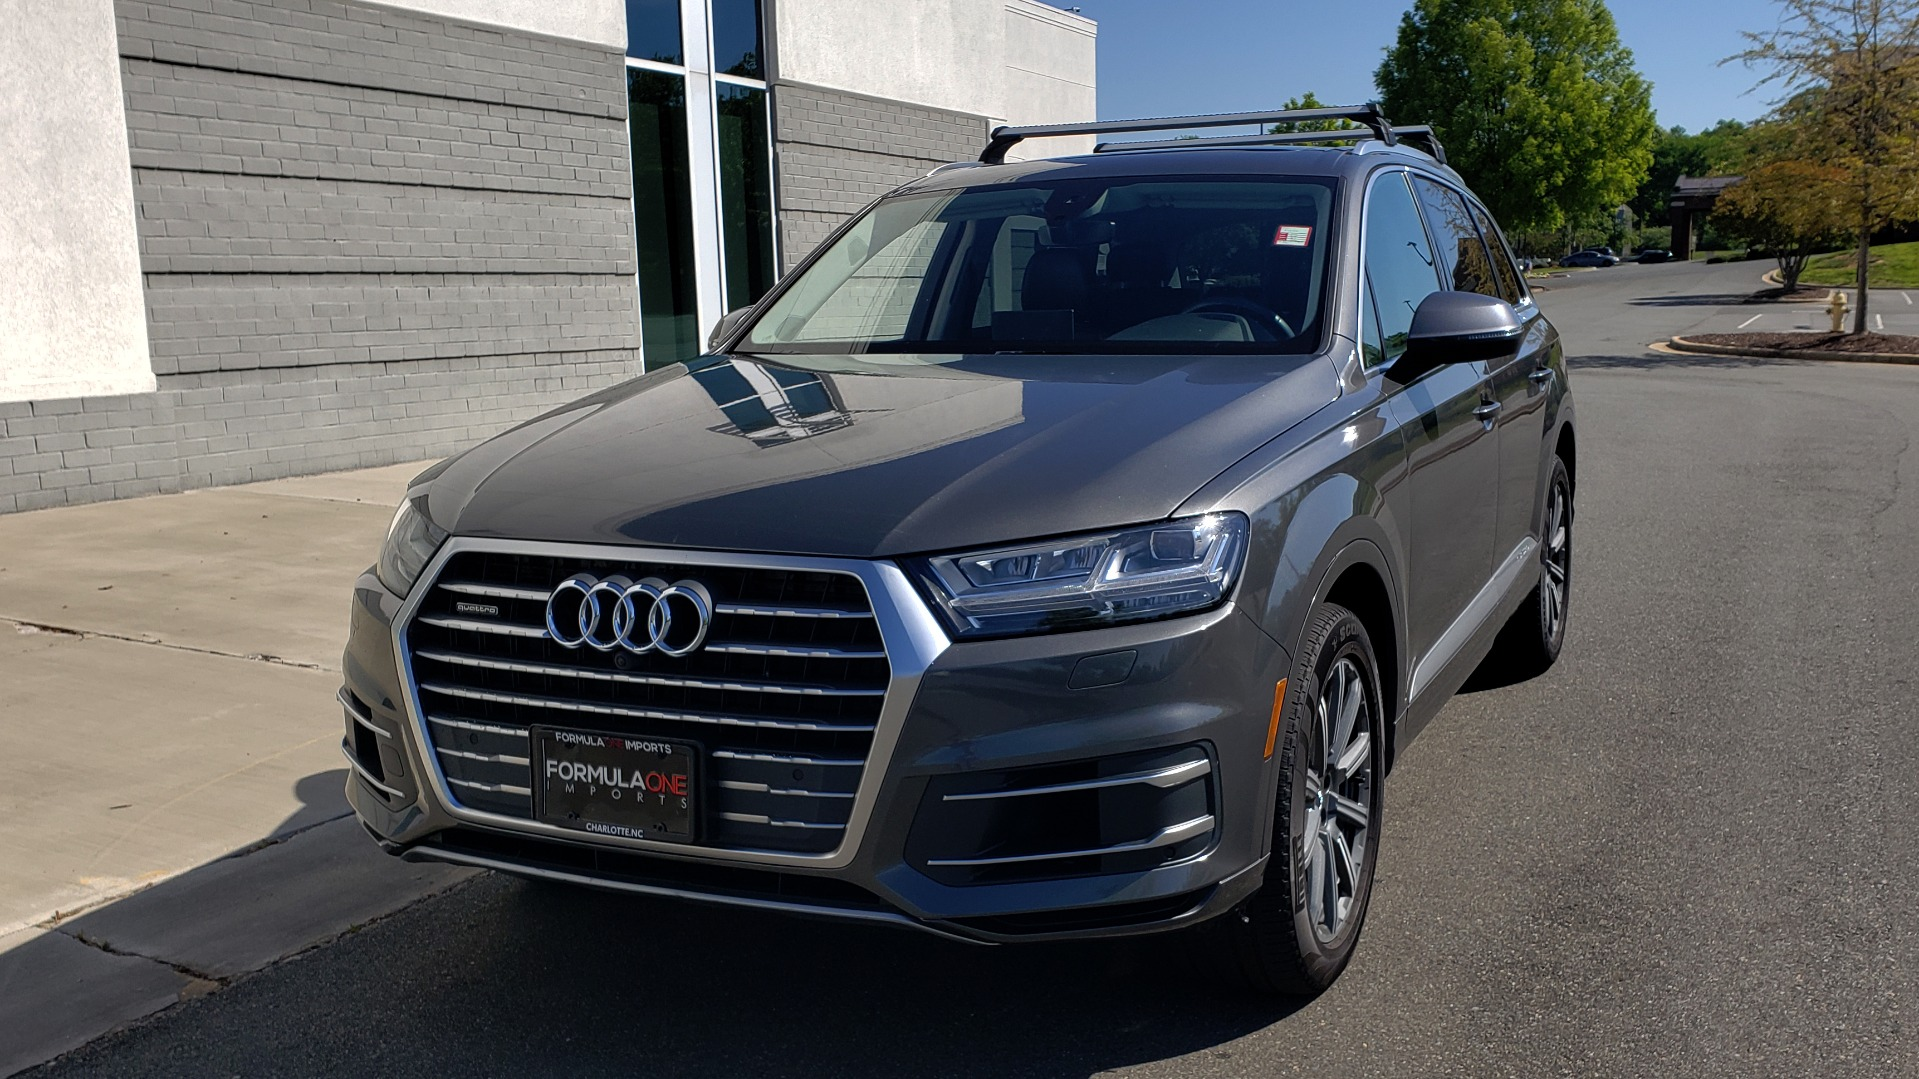 Used 2018 Audi Q7 PREMIUM PLUS TIPTRONIC / NAV / SUNROOF / VISION PKG / CLD WTHR / REARVIEW for sale $44,395 at Formula Imports in Charlotte NC 28227 2